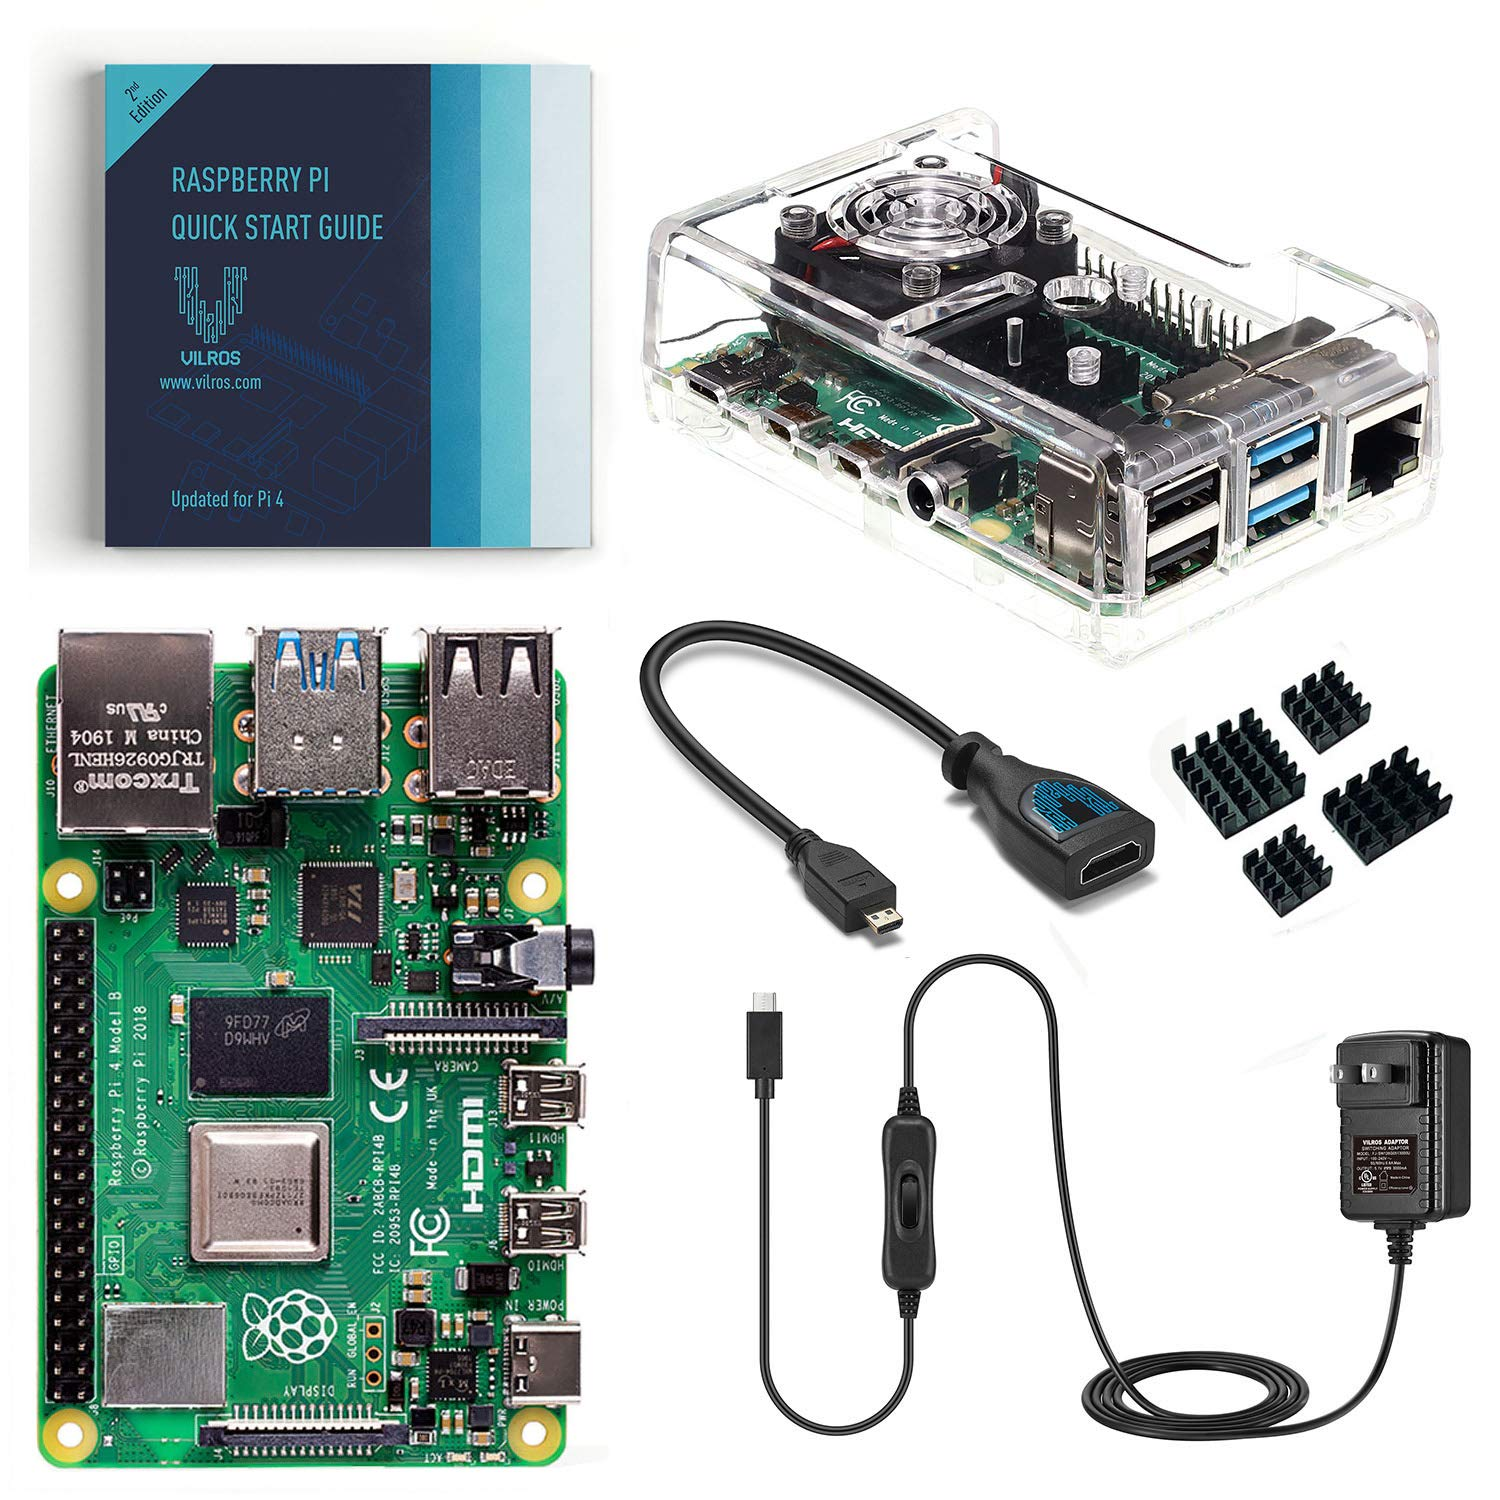 Vilros Raspberry Pi 4 Basic Kit with Fan Cooled Case (4GB) by Vilros